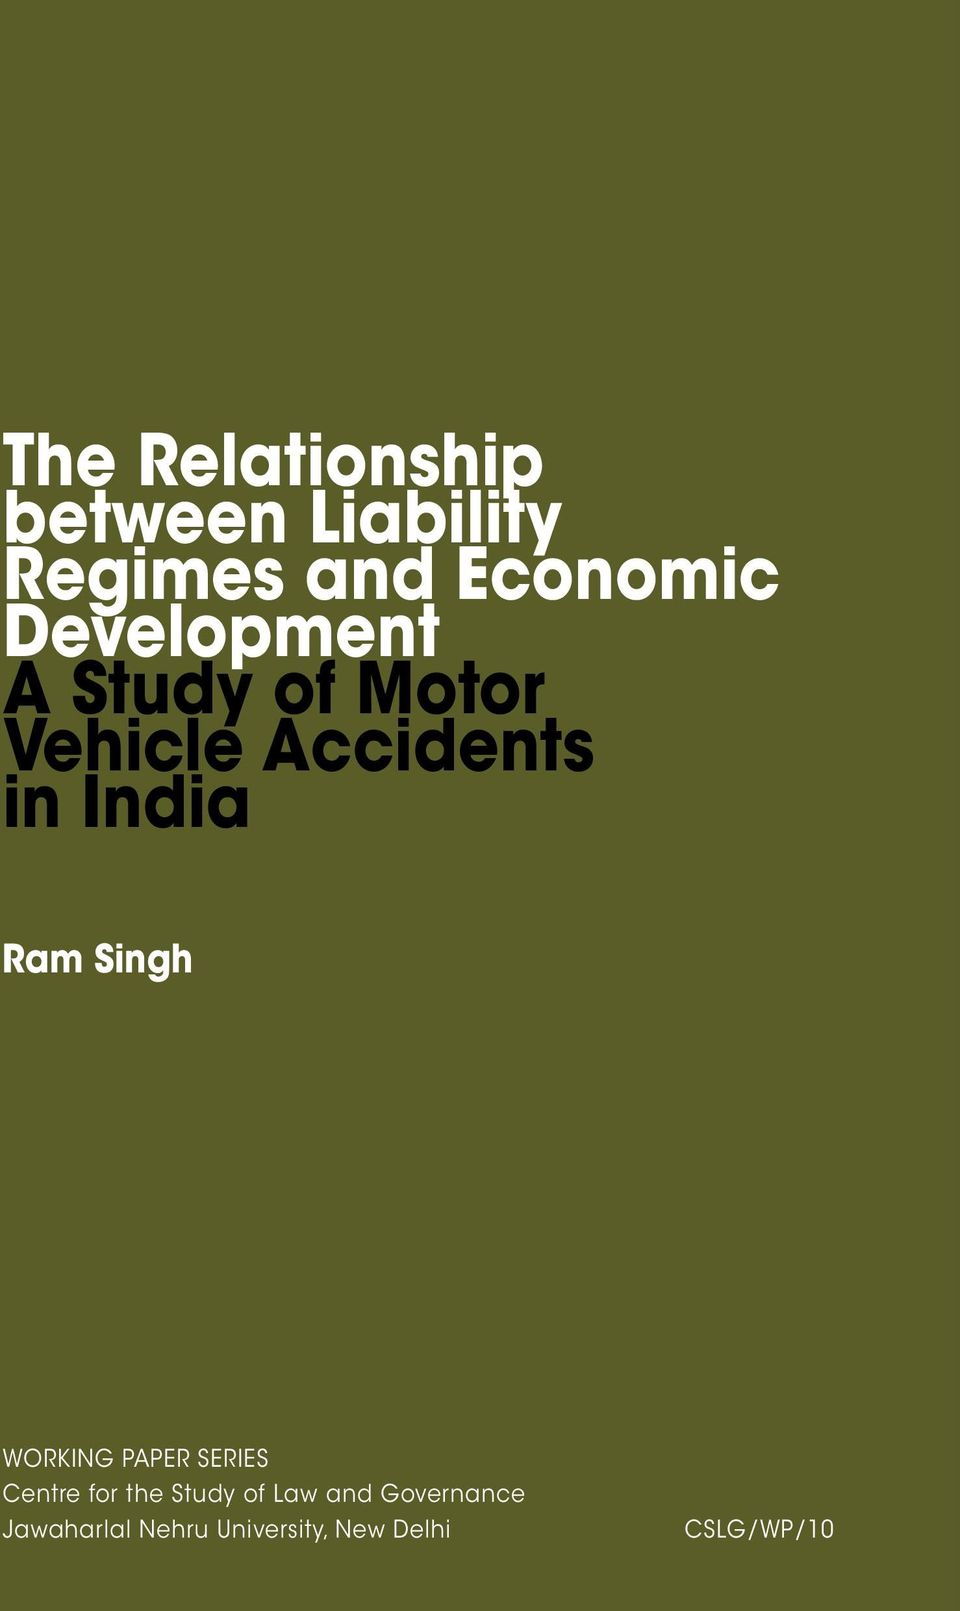 Ram Singh WORKING PAPER SERIES Centre for the Study of Law